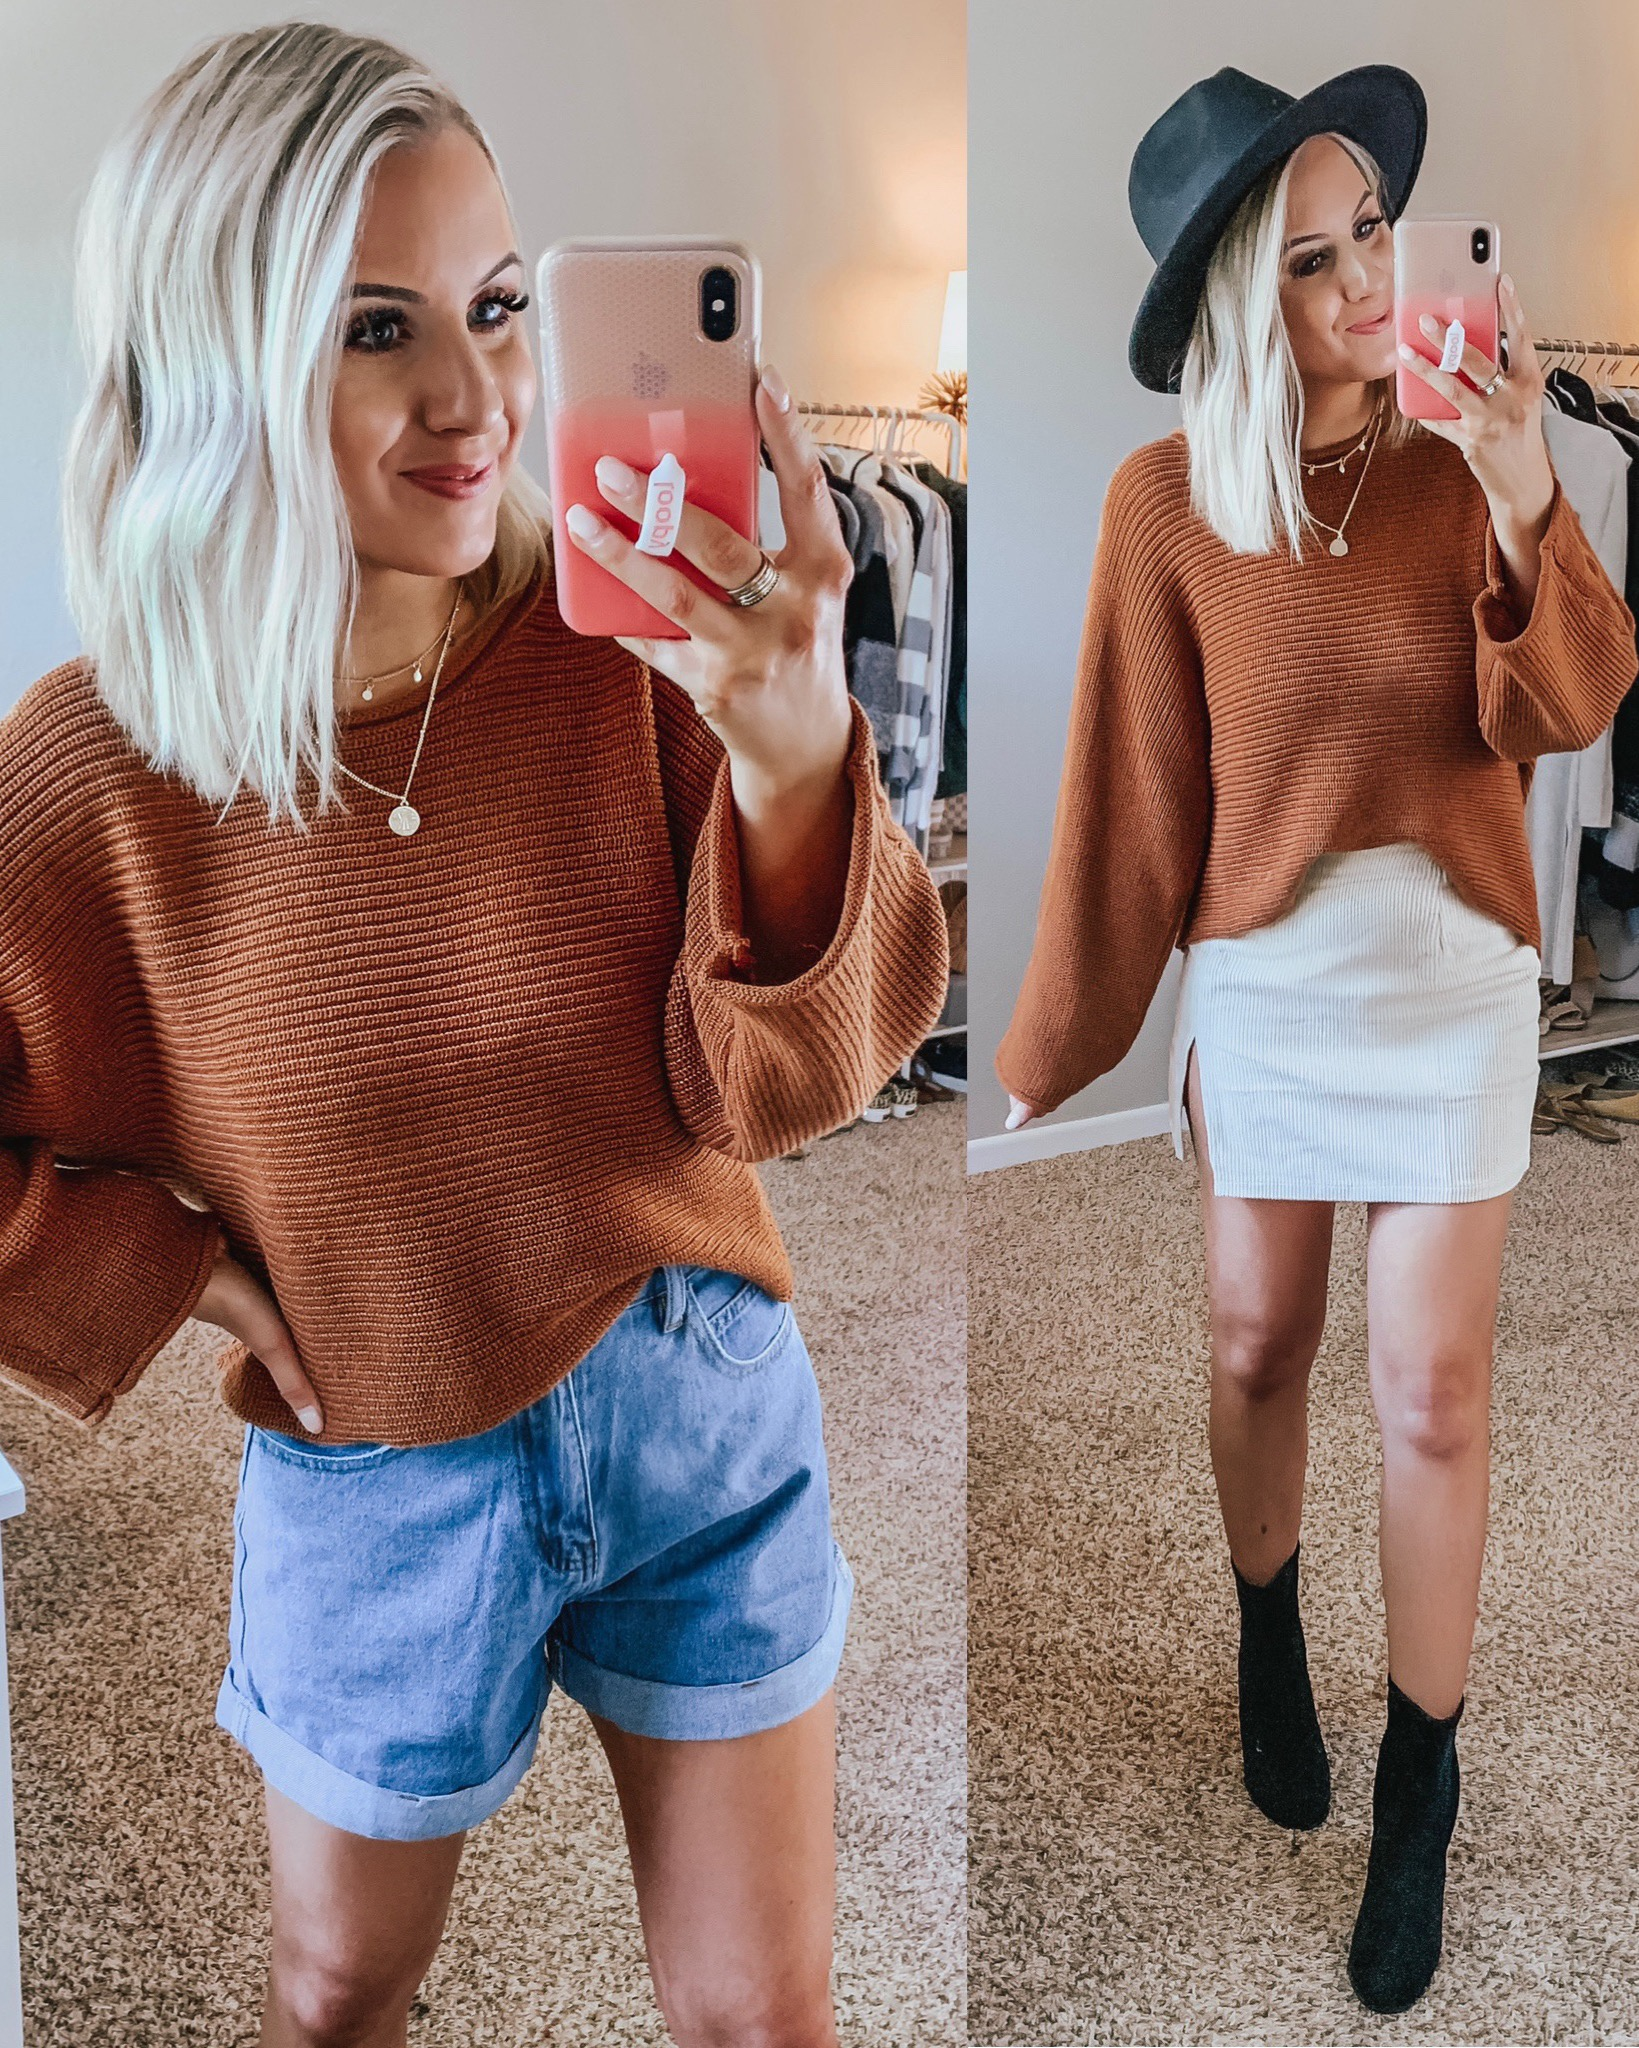 Affordable Outfits | Affordable Fall Transition Outfits | Style Blogger Lauren Meyer shares Affordable Outfits | Affordable Fall Transition Outfits